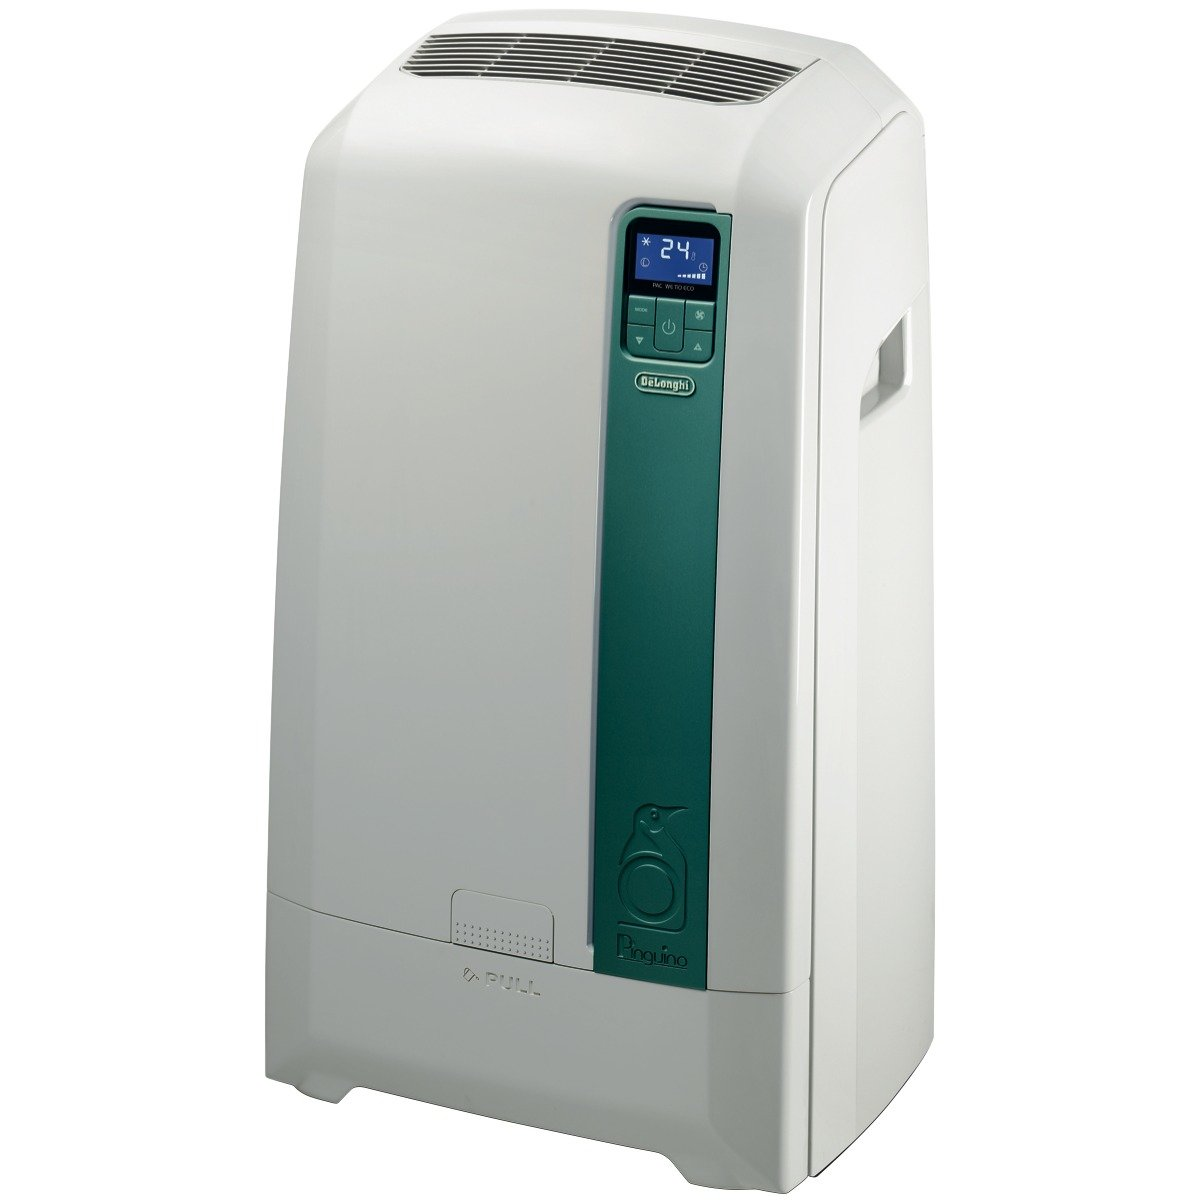 Delonghi PACWE18INV 5kW Portable Water To Air Technology Inverter Aircon - FREE Delivery & Price Match* image